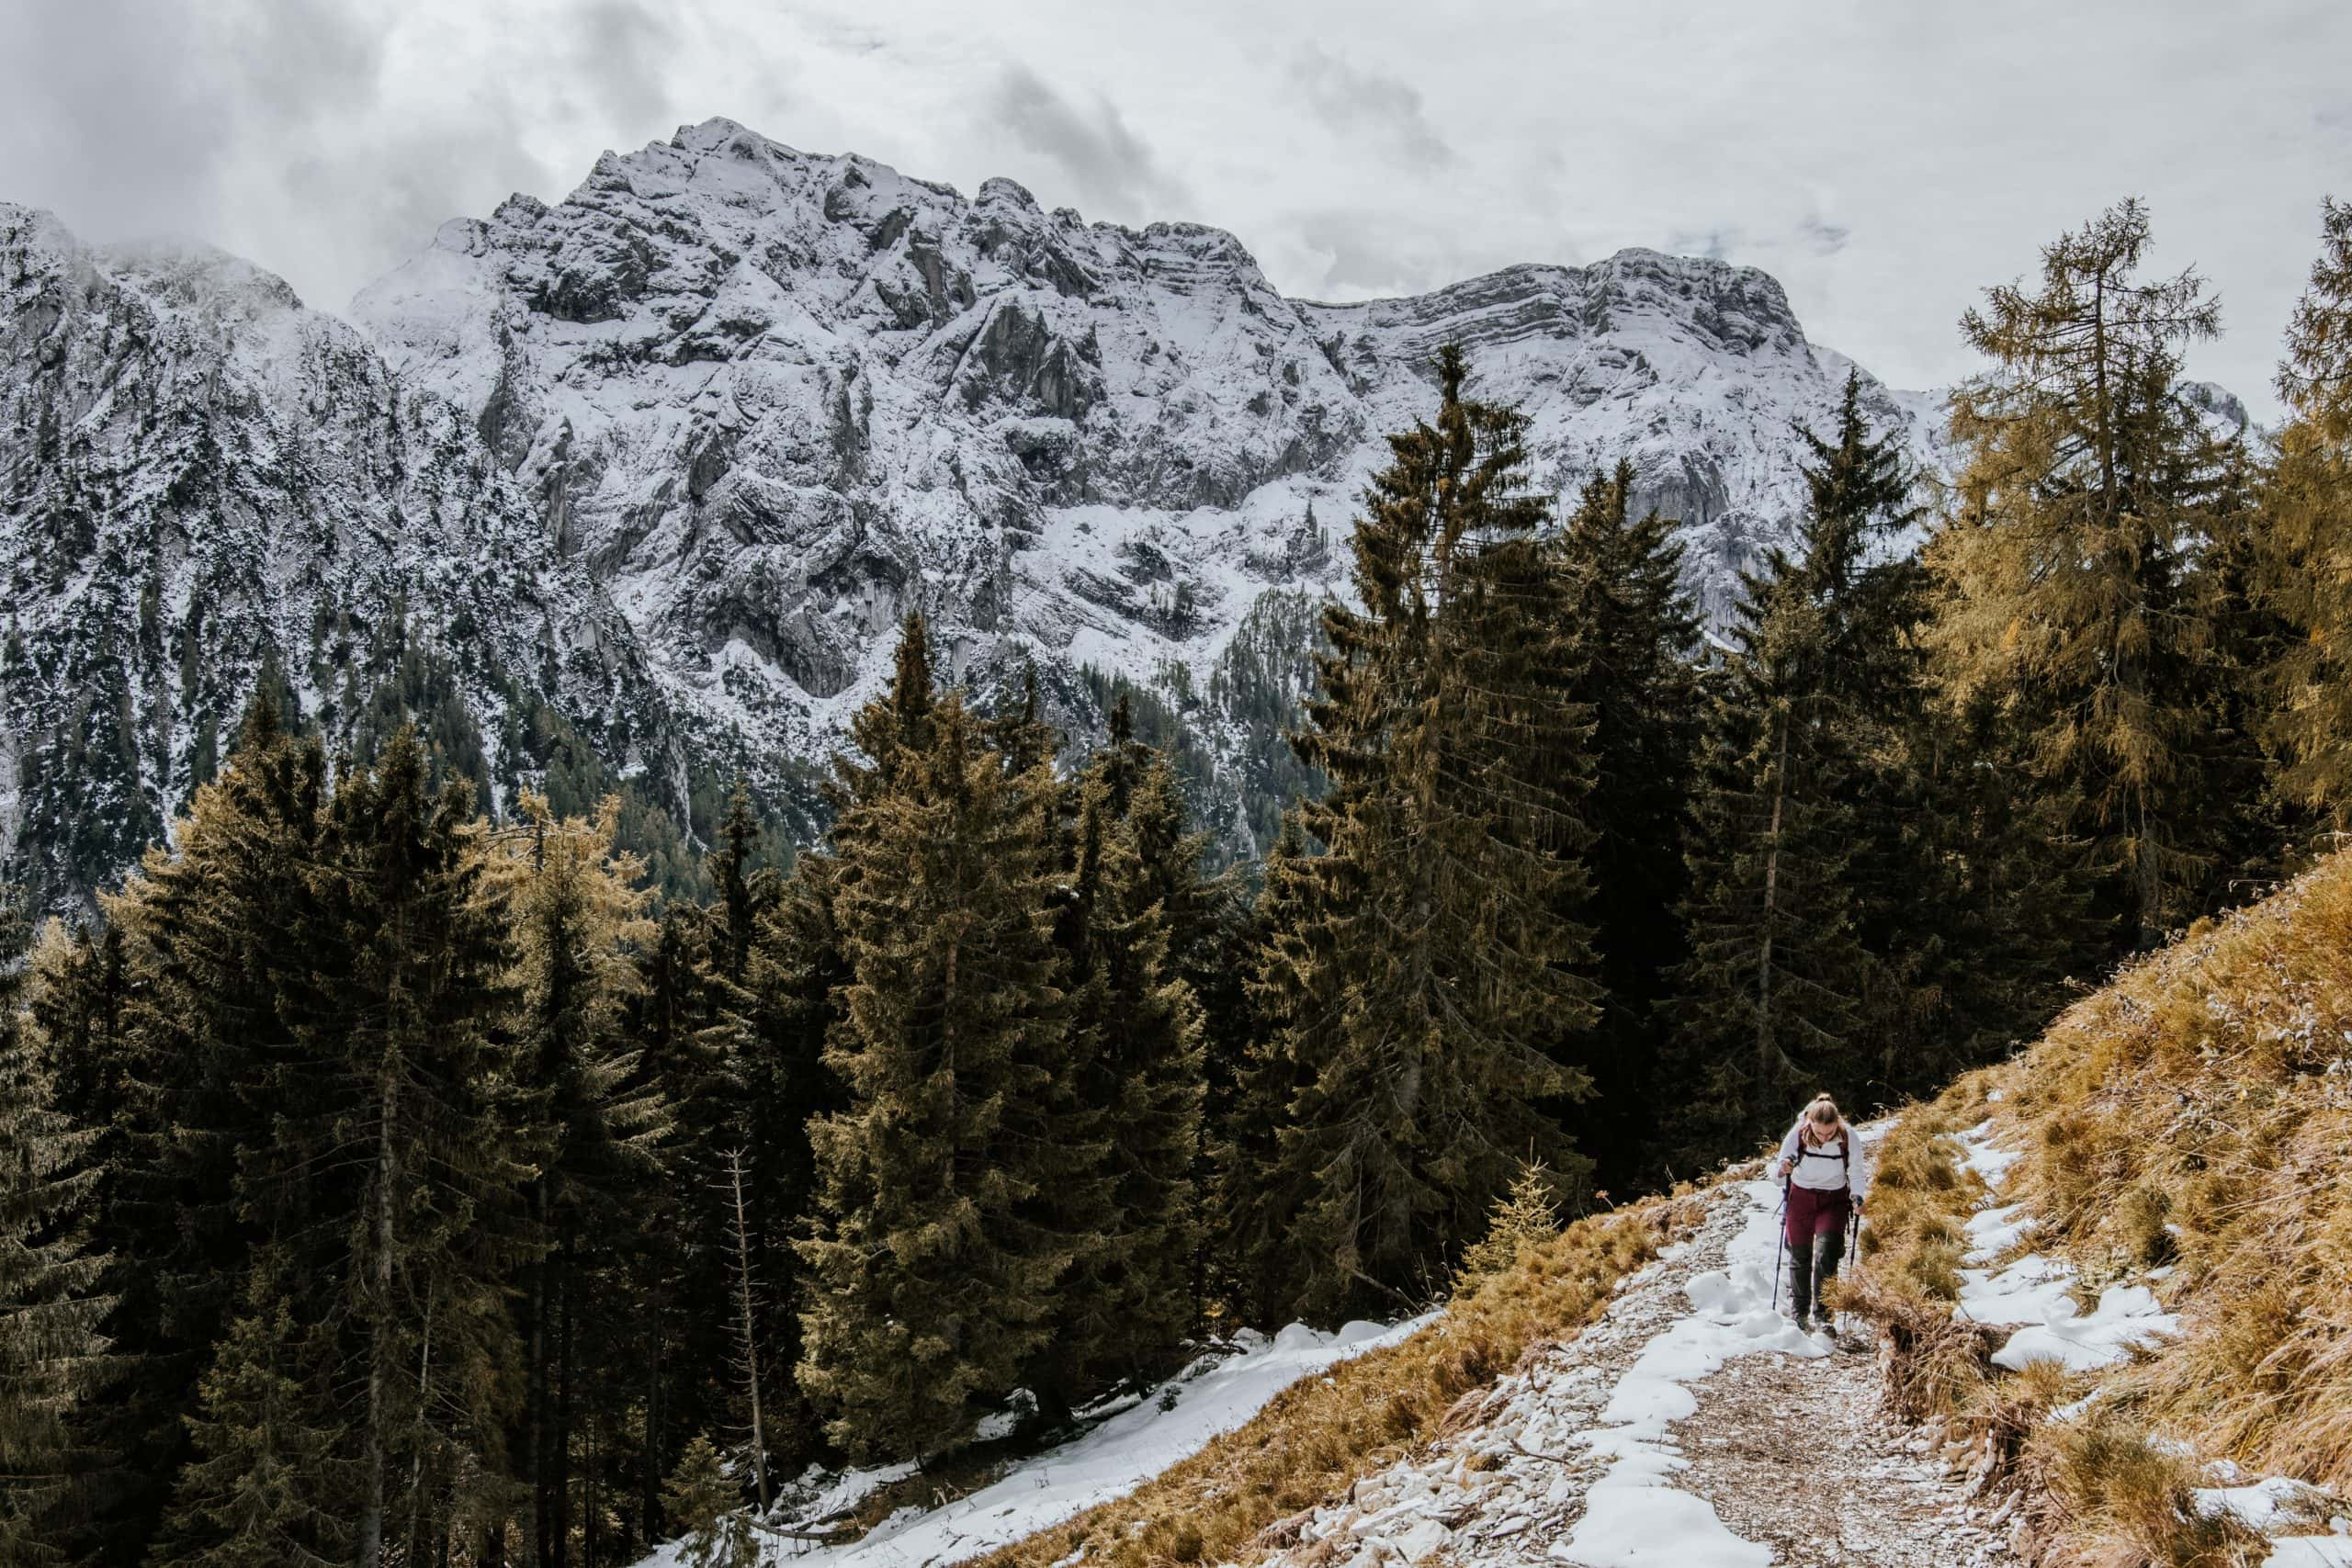 A person hikes on a snowy trail with snowy mountains in the background